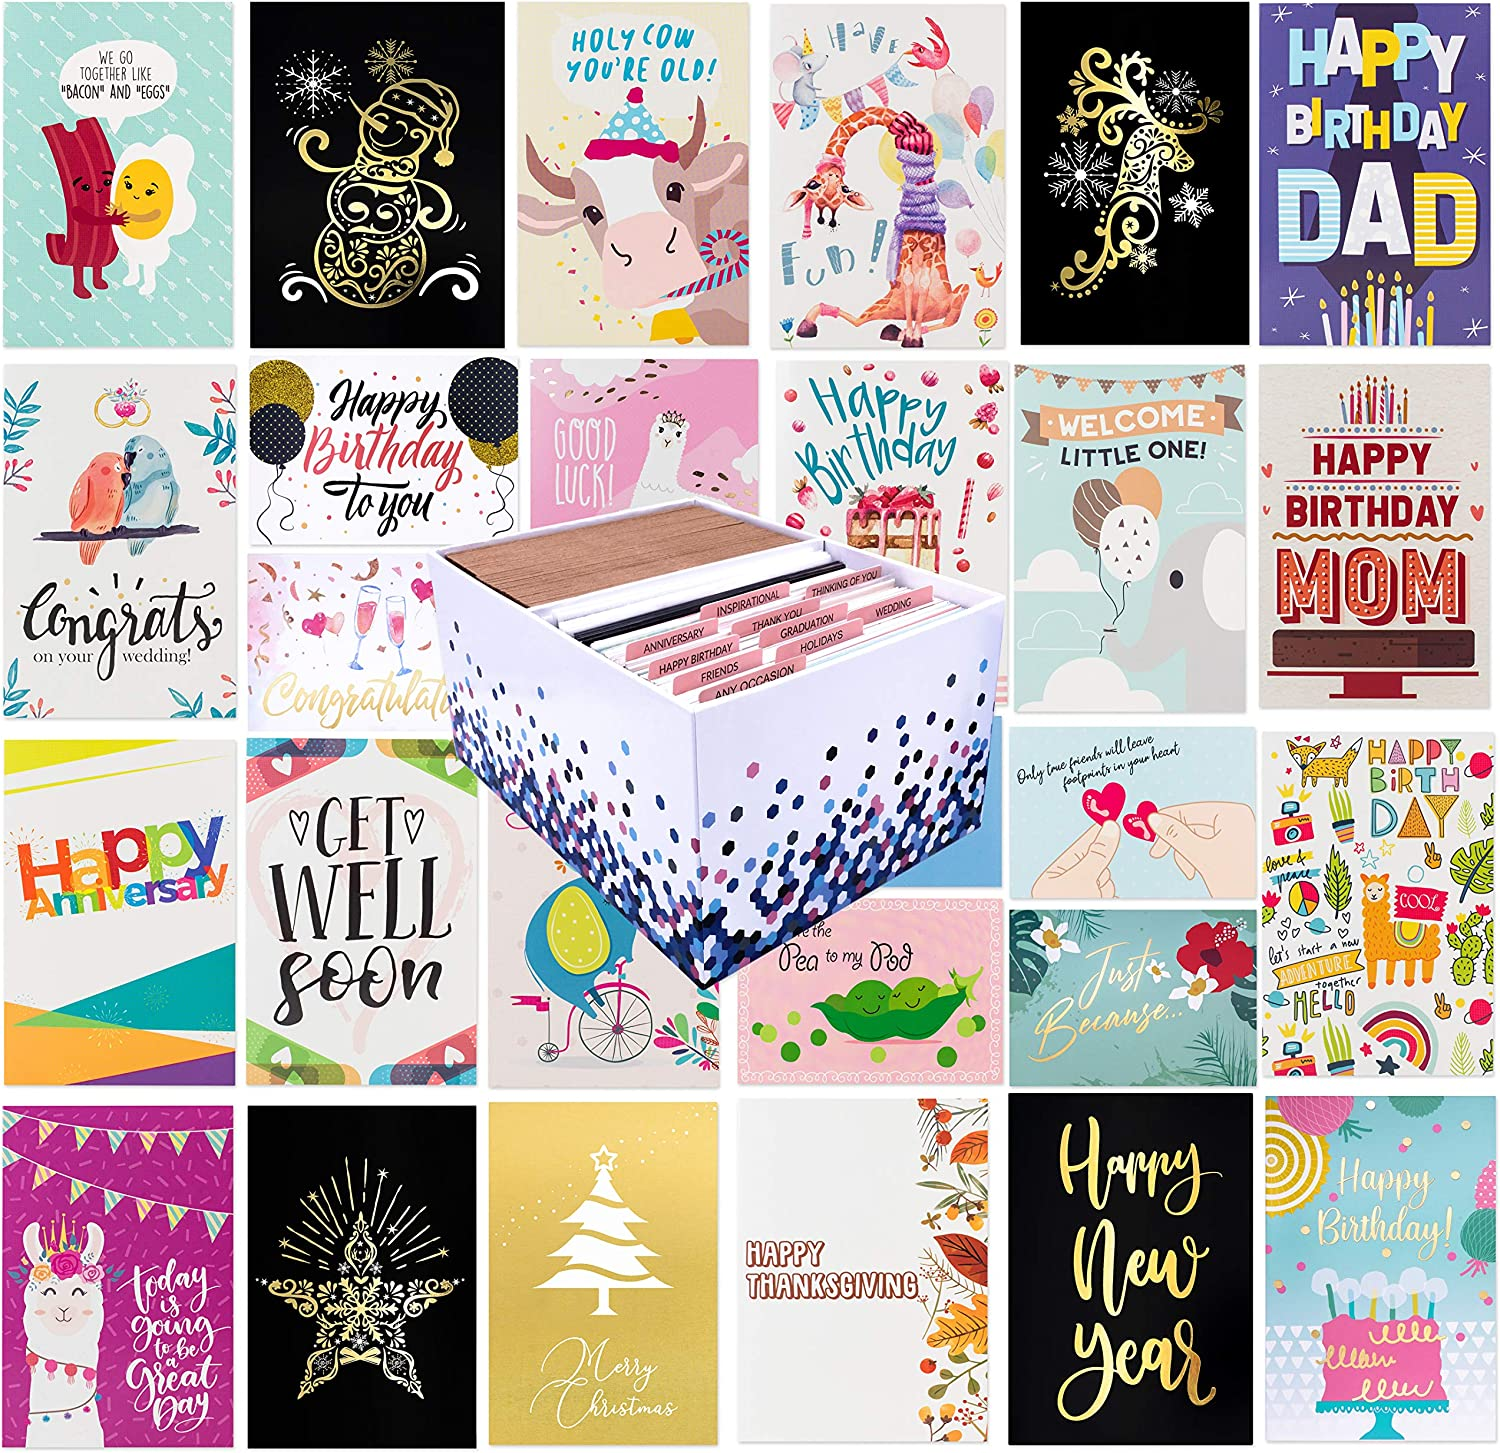 Amazon.com : 100 All Occasion Greeting Cards- 100 Eye Catching Designs with  Greeting Card Organizer Box- Friendship Cards, Anniversary Cards, BFF Cards,  Thanks Cards, Wedding Cards & More- 4 x 6 with 100 Envelopes : Office  Products